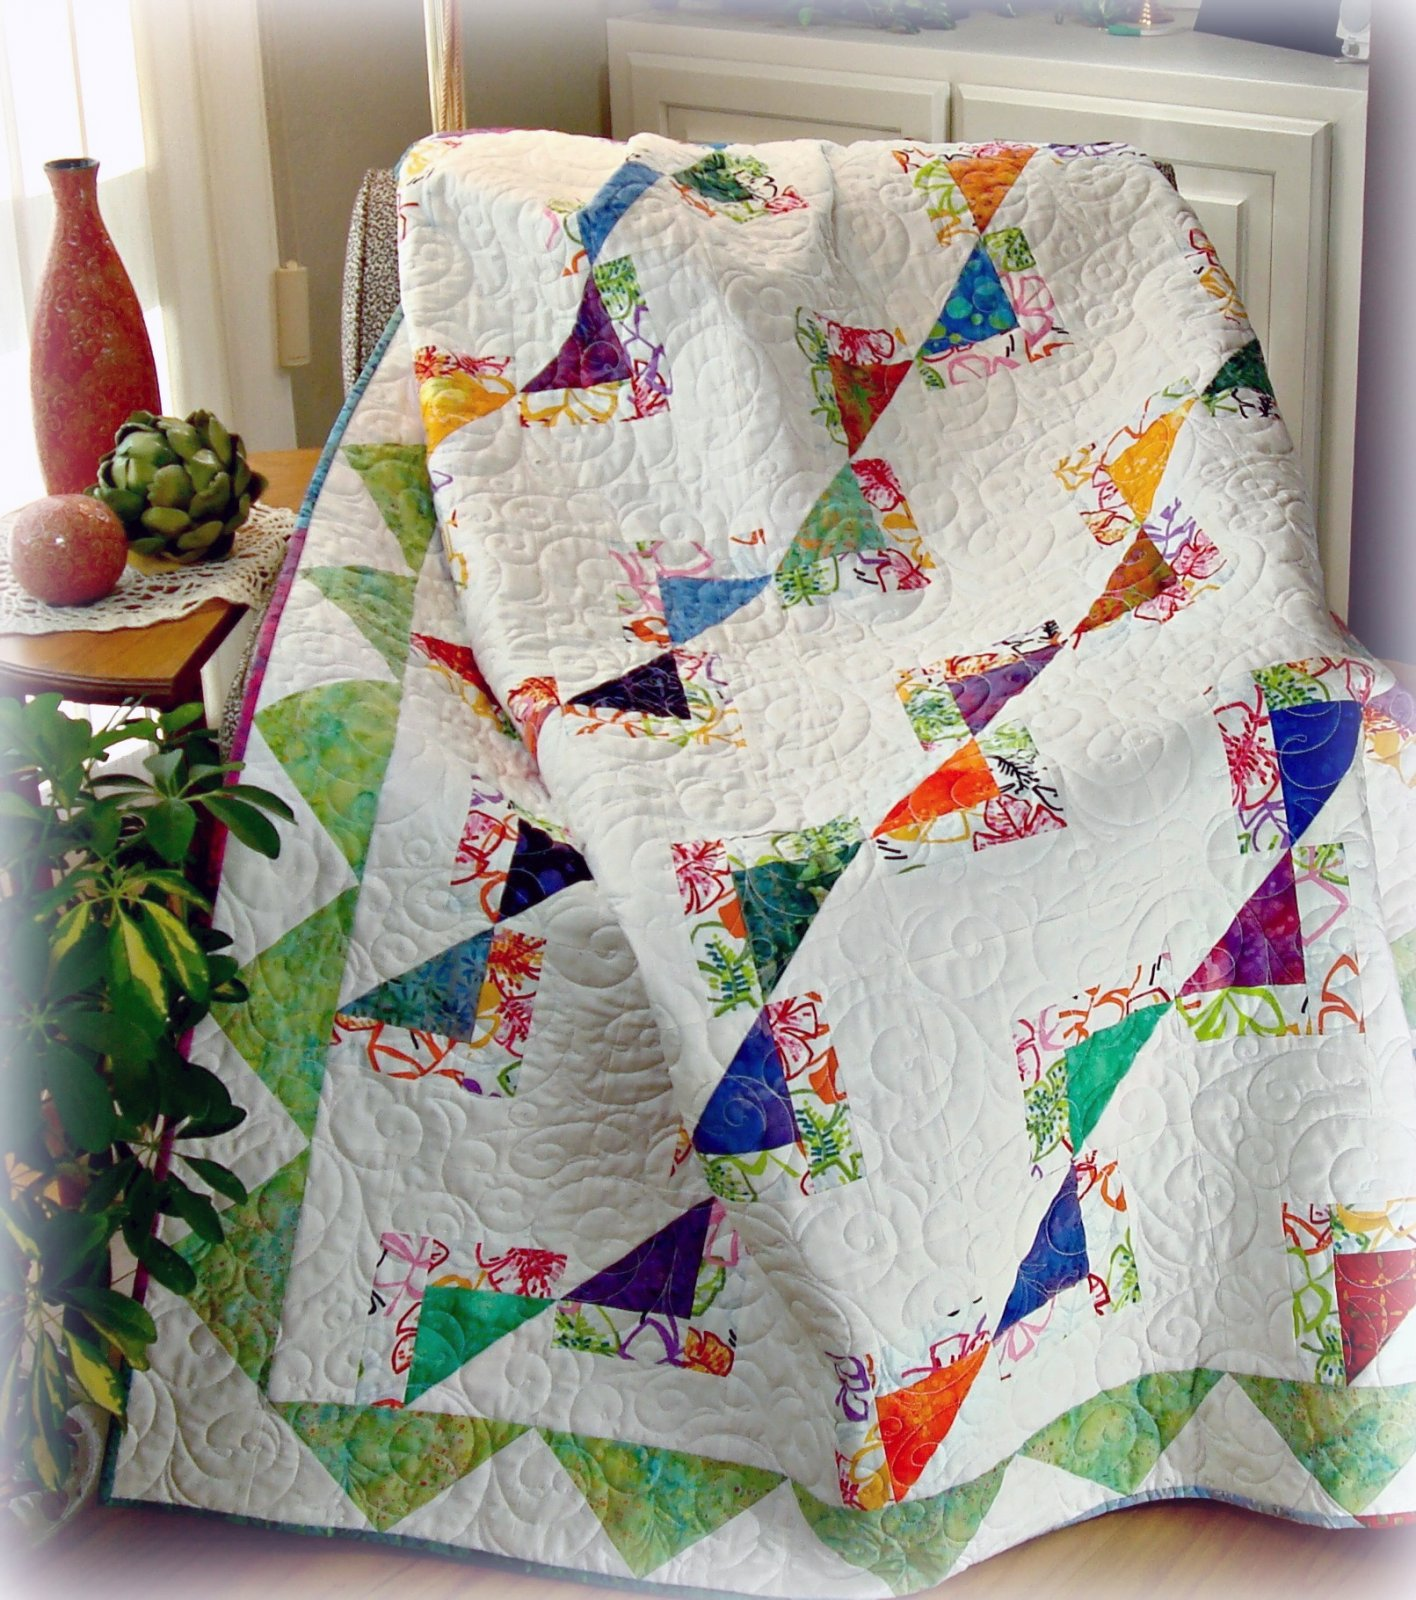 Newport Fantasy Quilt Pattern Digital Download #433